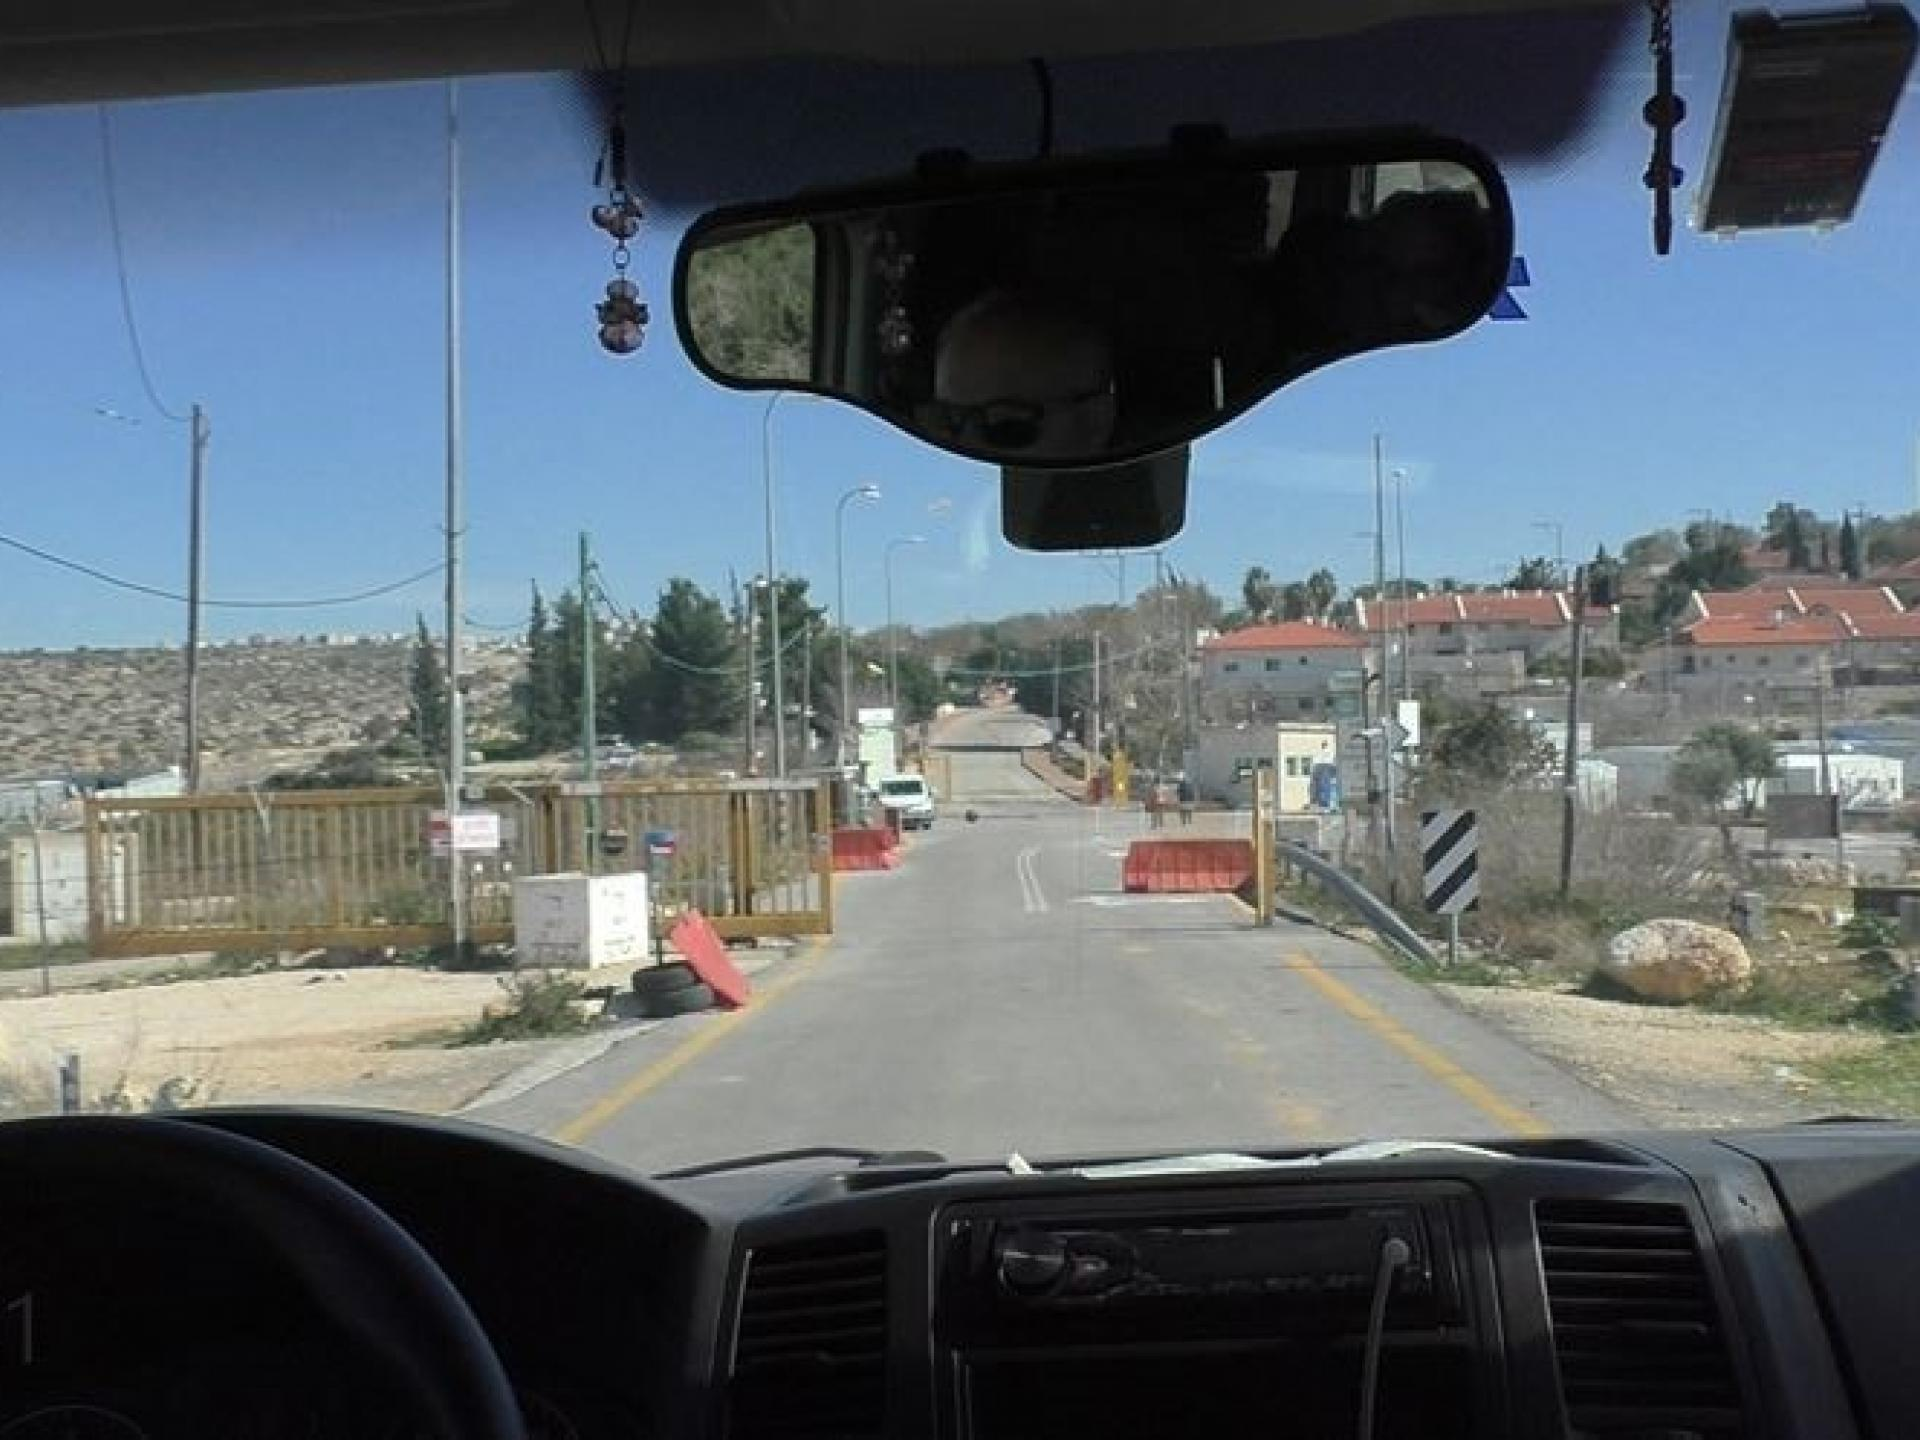 Highway 450: another apartheid checkpoint against Palestinians